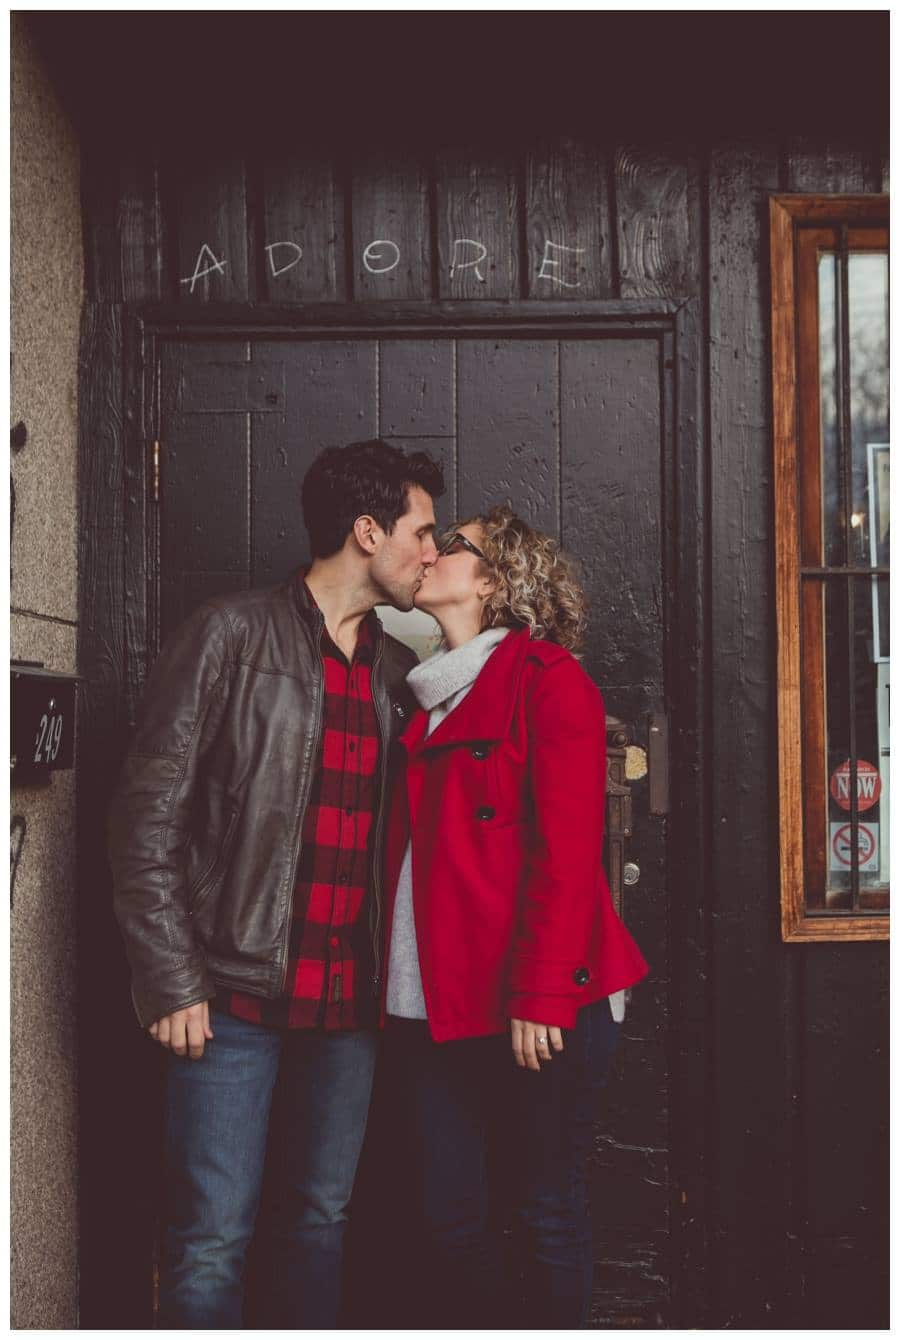 Couple in red kissing in front of old wooden door with adore written in chalk above their heads